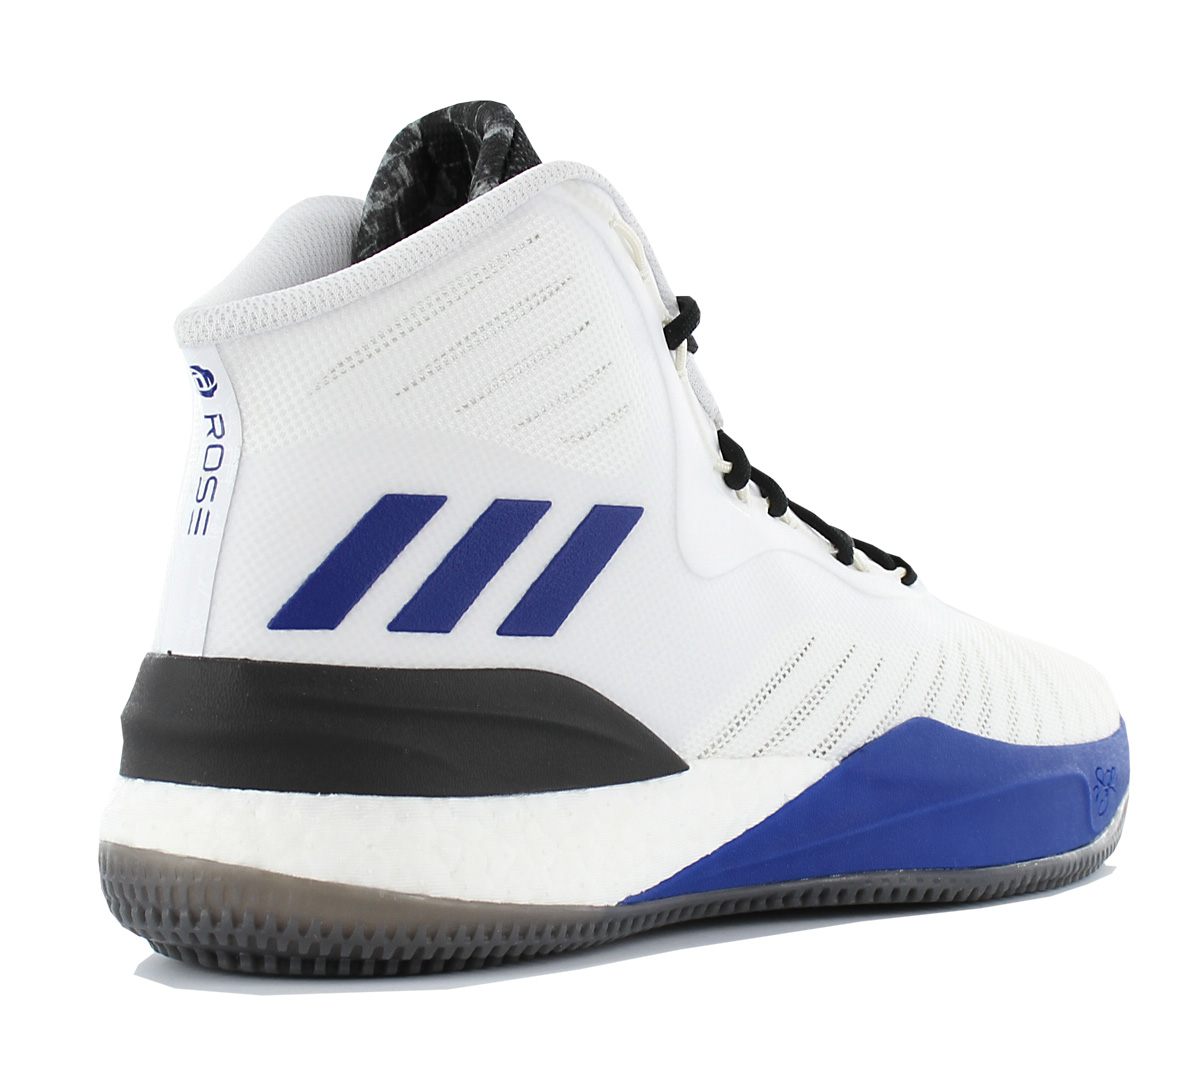 outlet store 00e71 0f849 Adidas Derrick D Rose 8 Boost Mens Basketballshoe Basketball